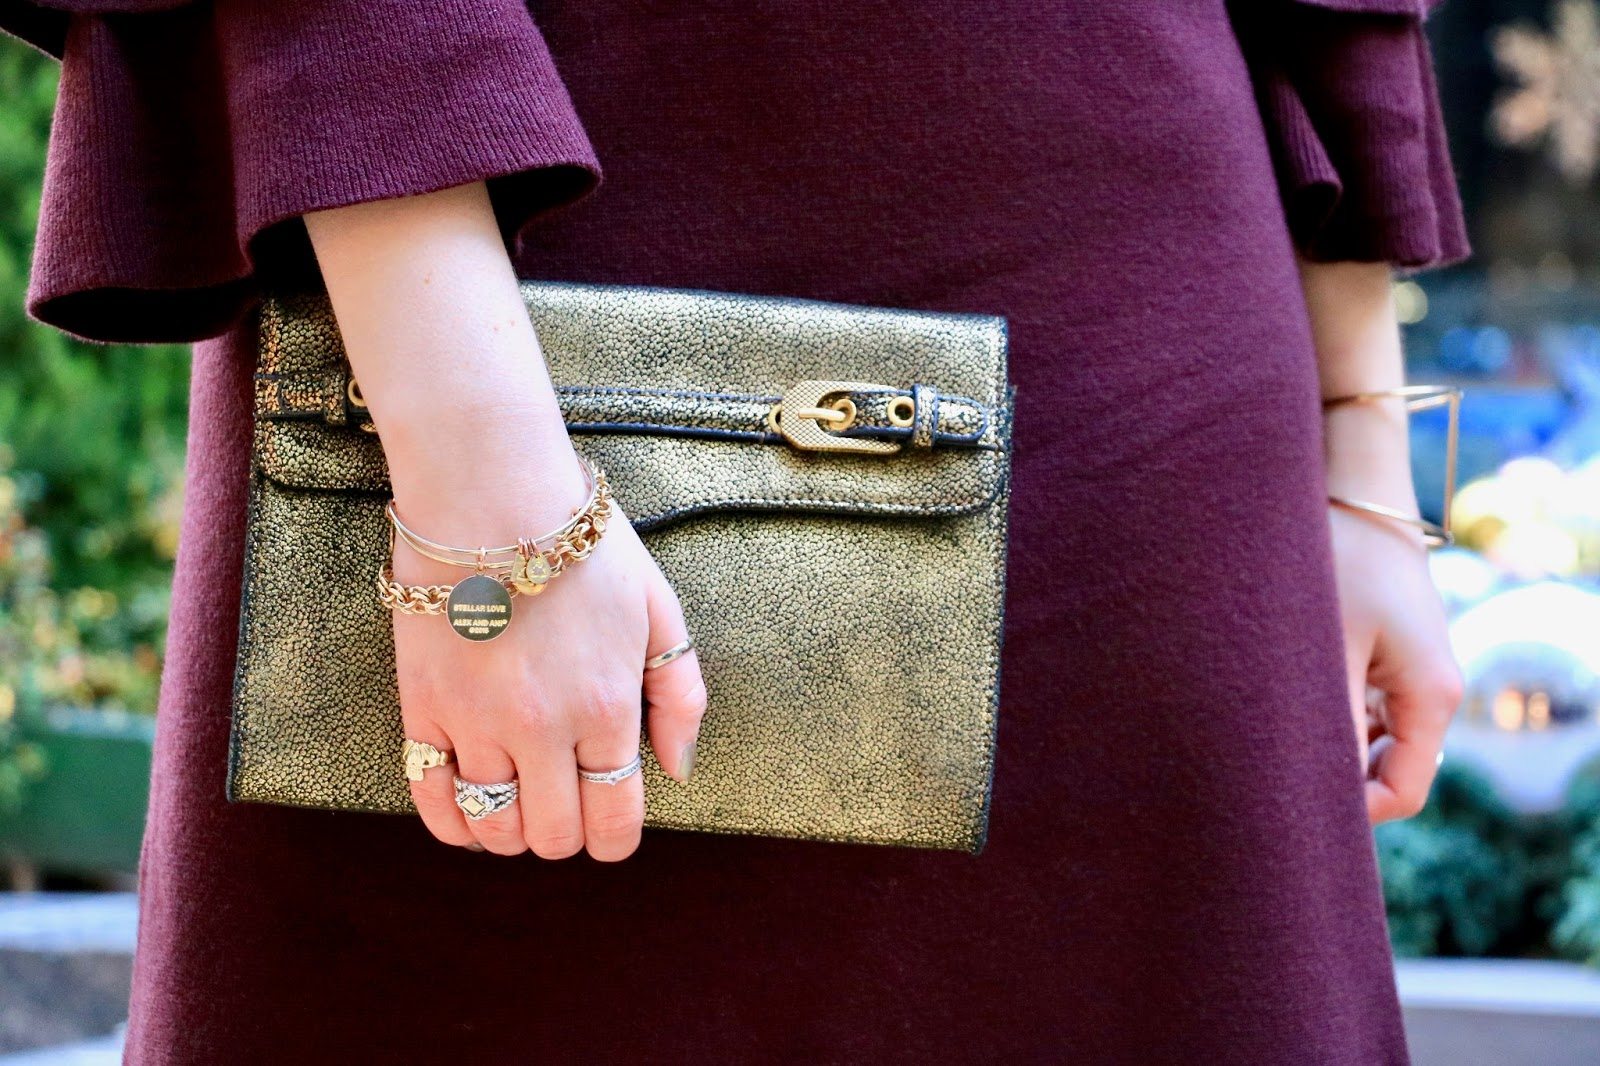 Nyc fashion blogger Kathleen Harper carrying a gold holiday clutch by Rebecca Minkoff